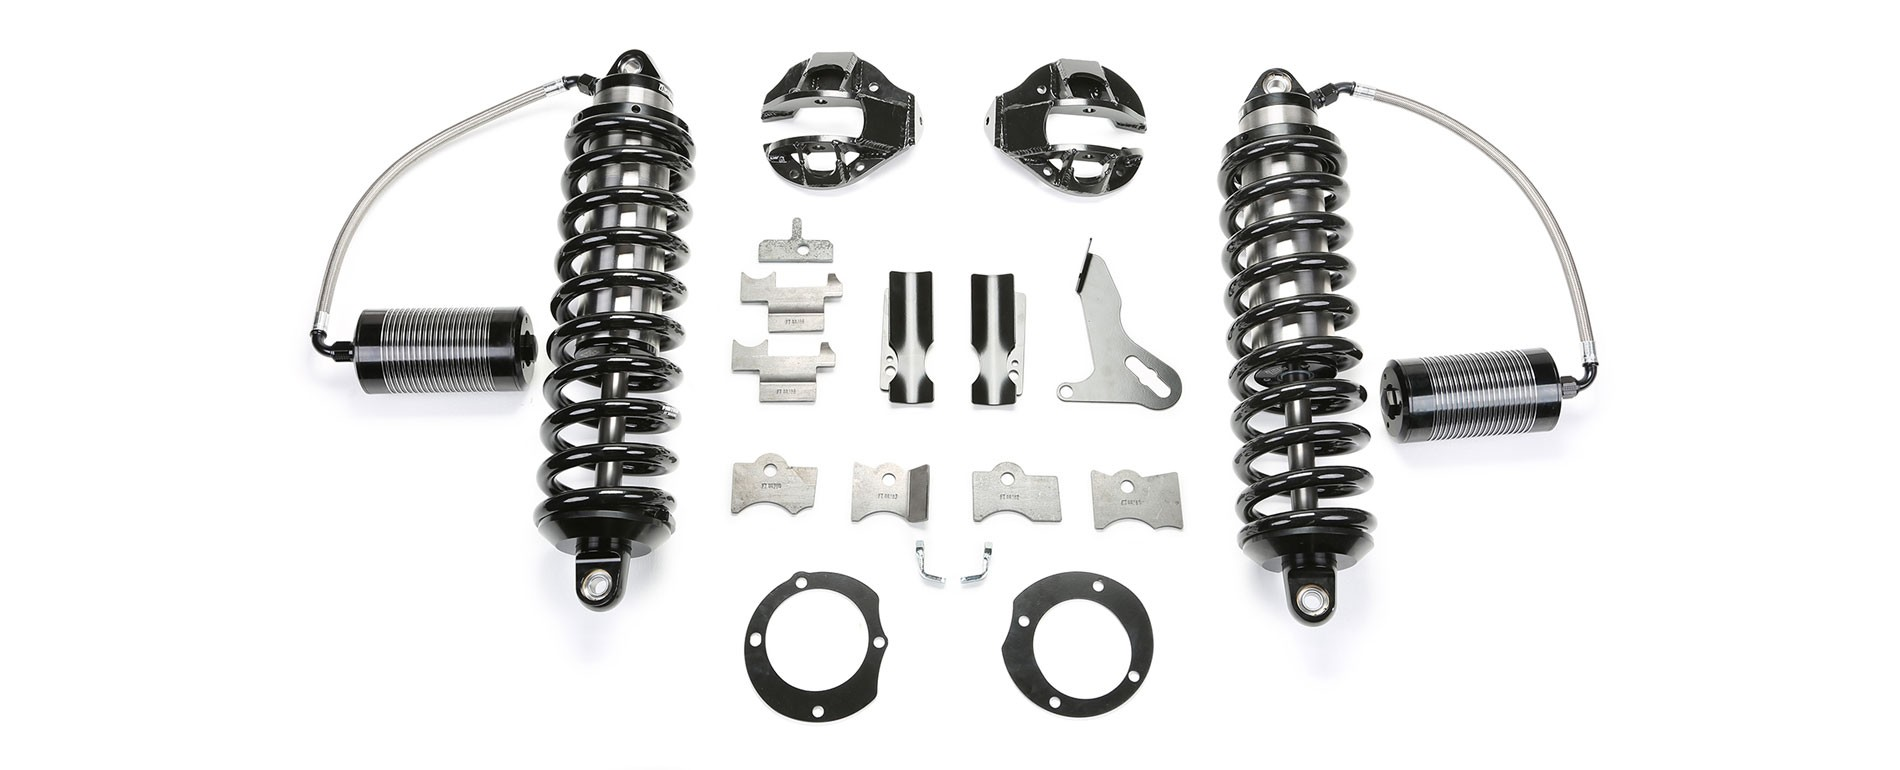 "FABTECH 7"" Dirt Logic 4.0 Resi Coilover Conversion - 2014-17 Ram 2500 4WD & 2013-17 Ram 3500 4WD"